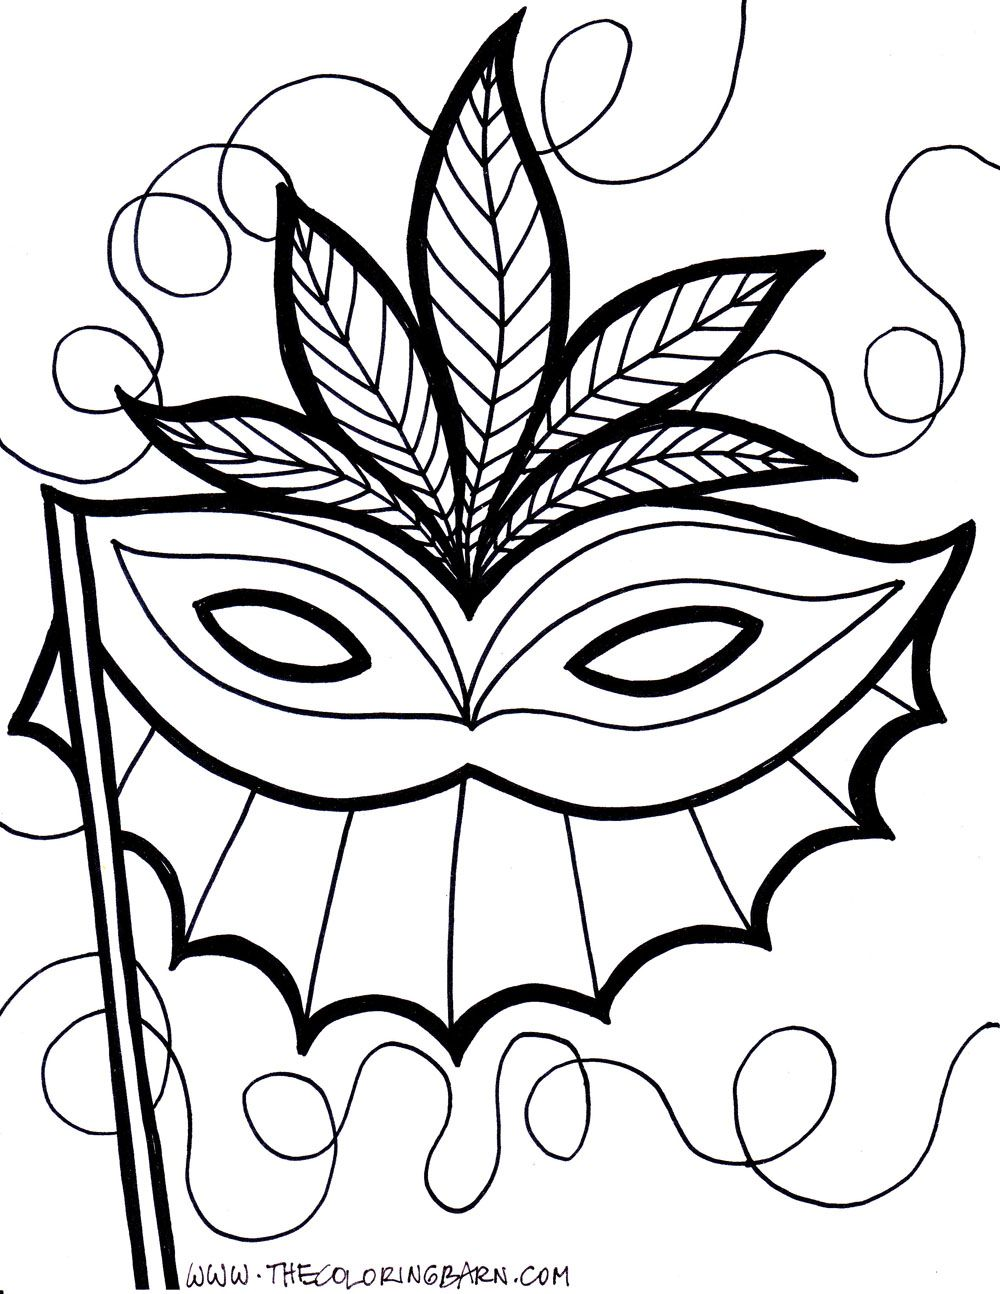 mardi gras coloring pages free printable # 1